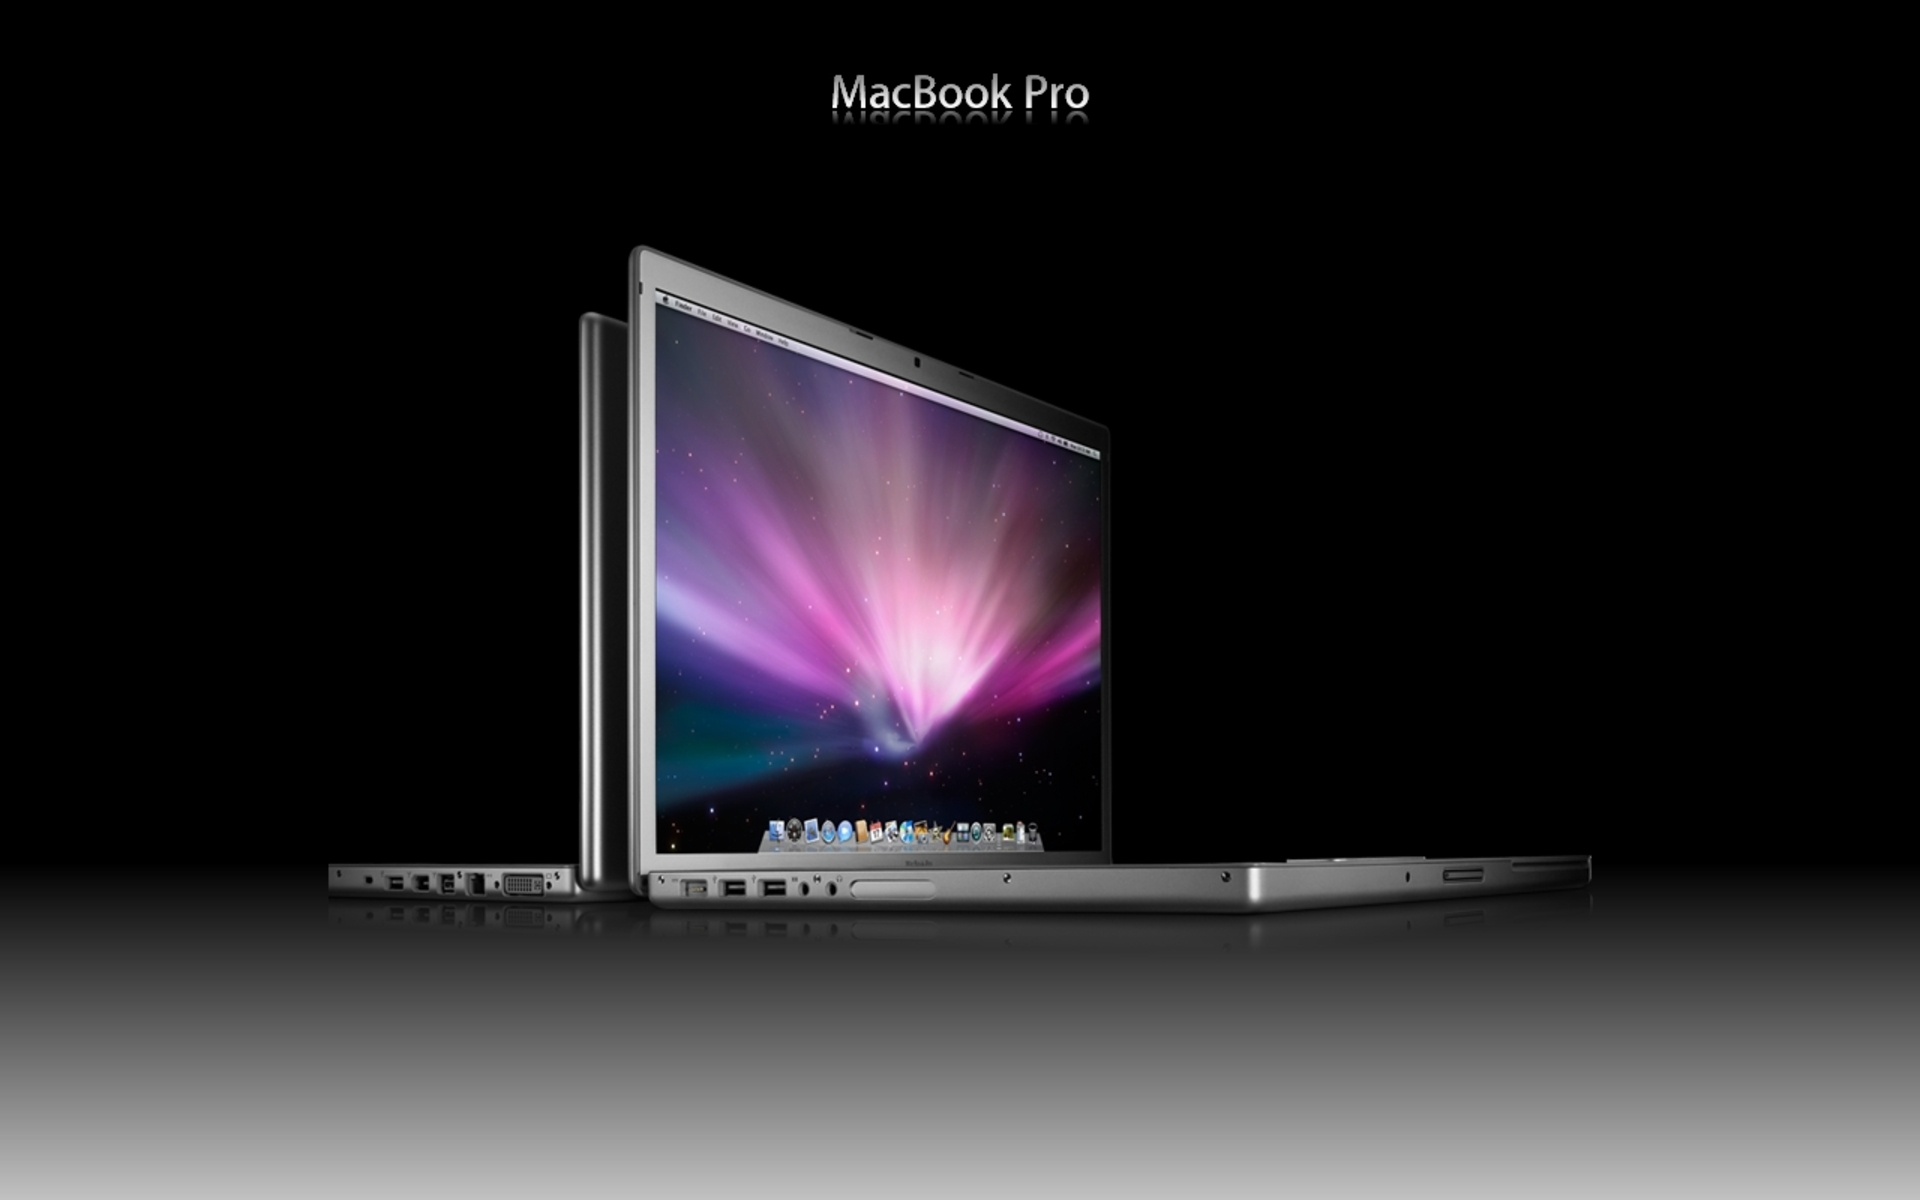 Macbook Pro HD